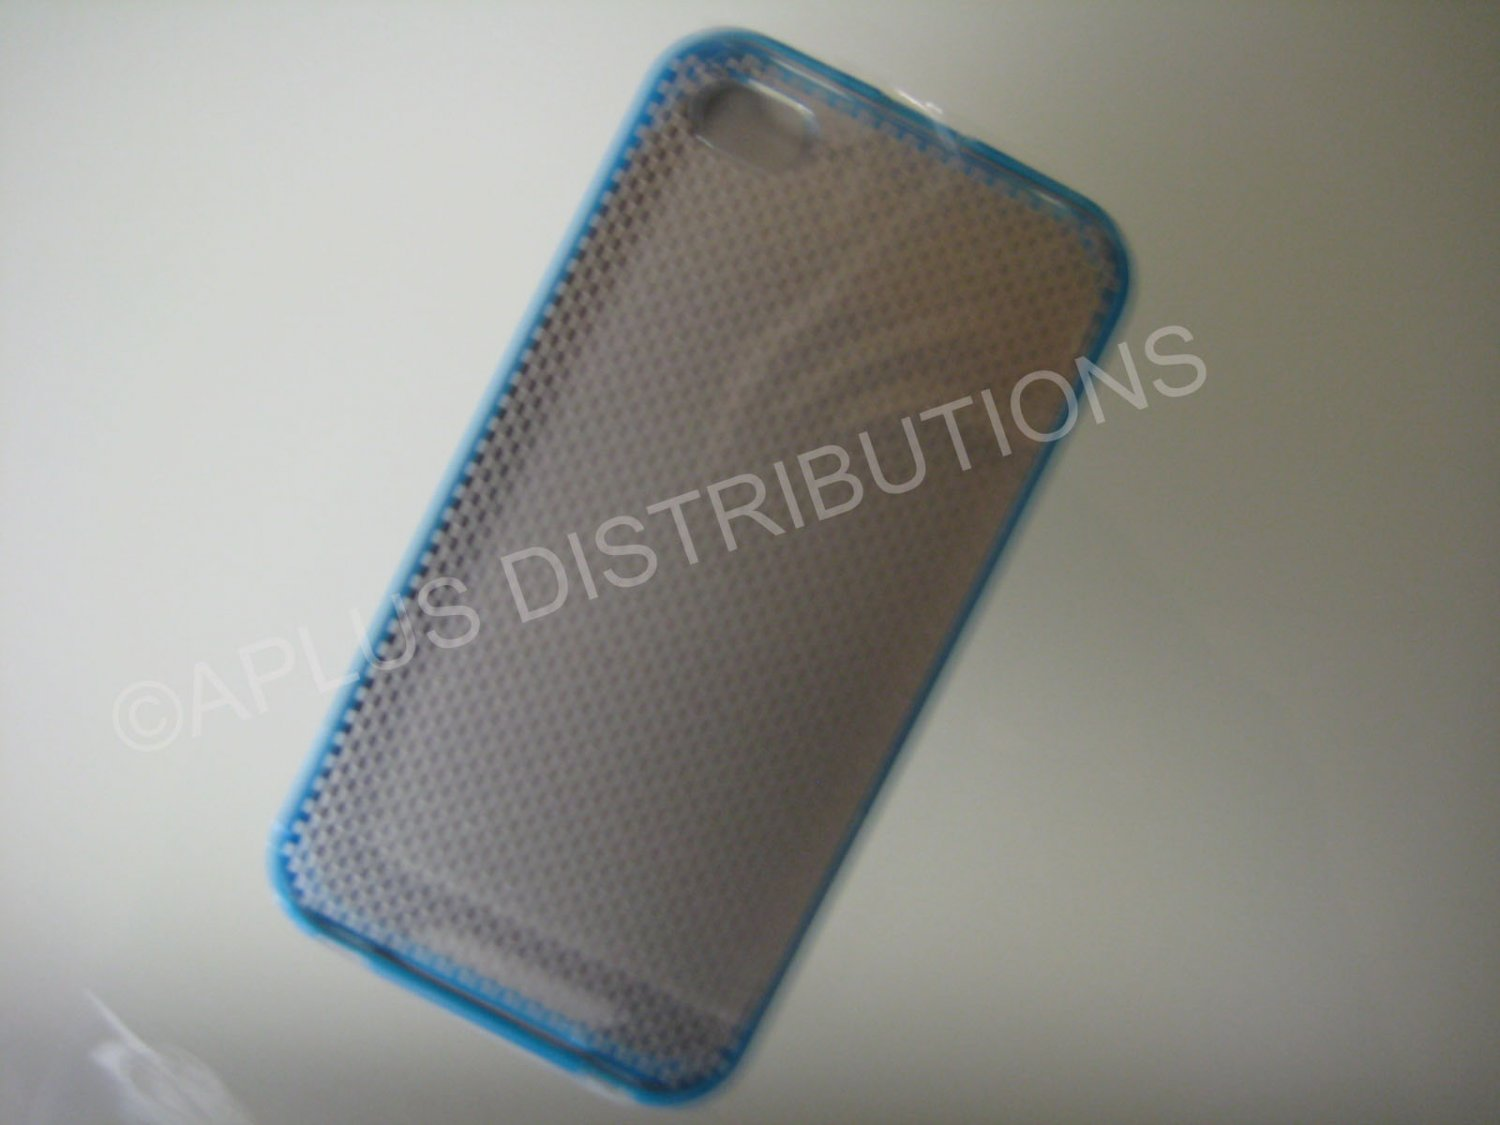 New Blue Transparent Checkered Pattern Hard Protective Cover For iPhone 4 - (0149)